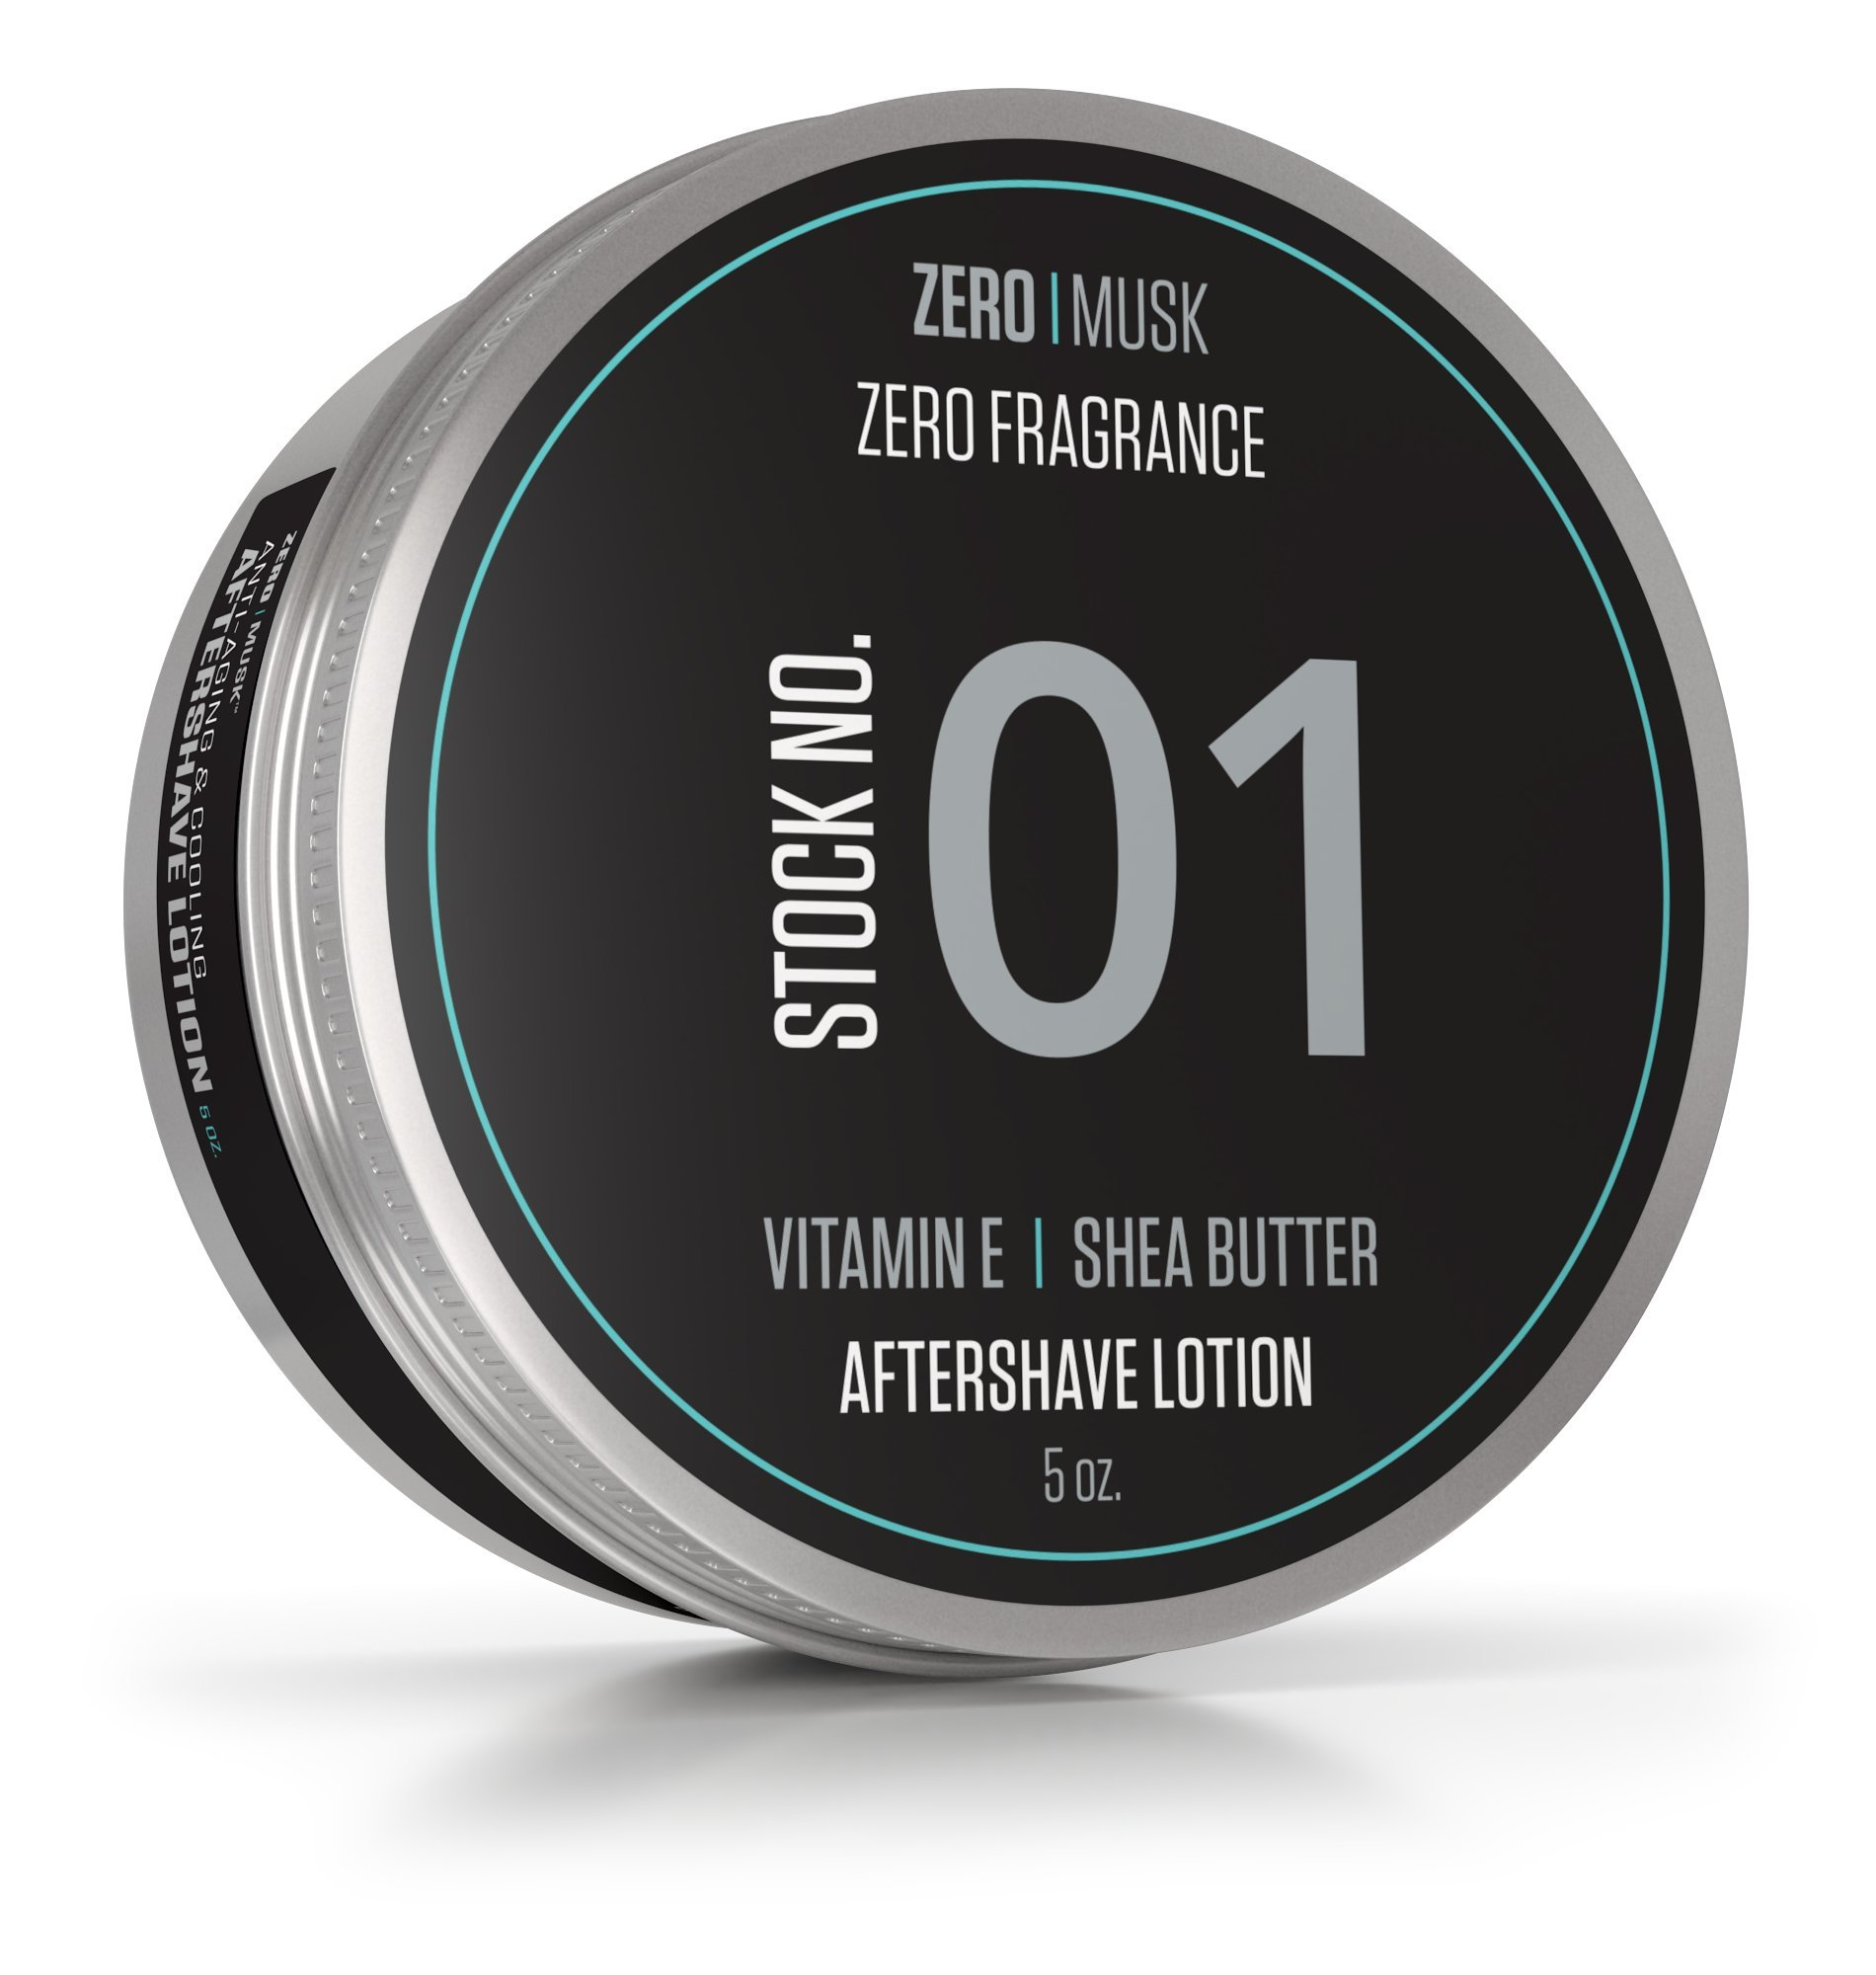 Aftershave Lotion For Men - (5oz) Mens Anti-Aging Post Shave Moisturizer With Vitamin E - Unscented After Shave Lotion With Cooling Menthol - Prevent & Heal Razor Burn and Dry Skin With Moisturizing S